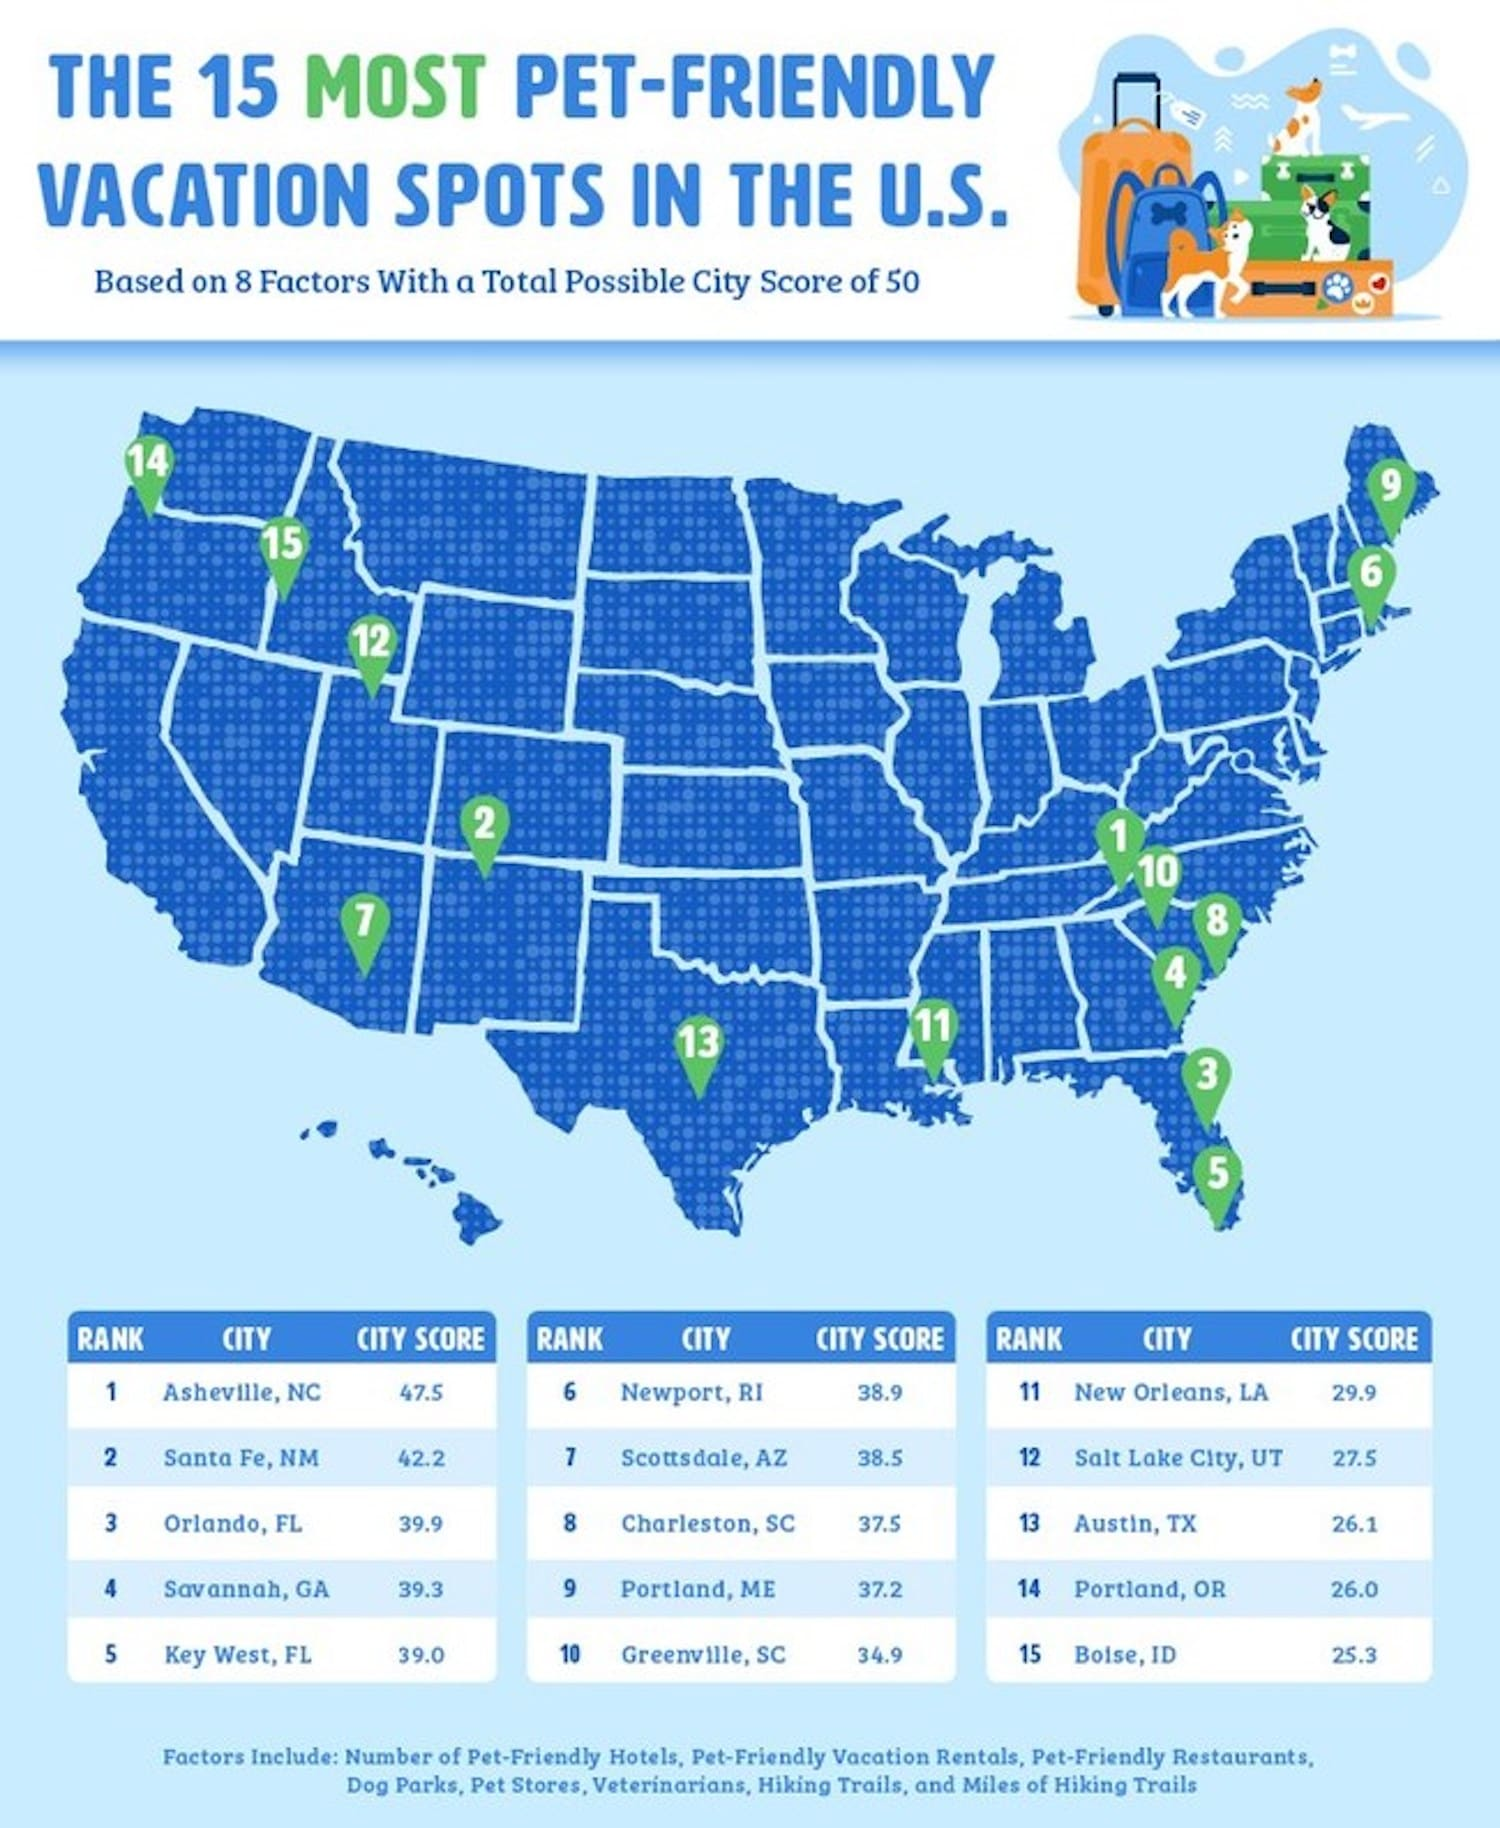 Study Highlights the Most and Least Pet-Friendly U.S. Vacation Spots